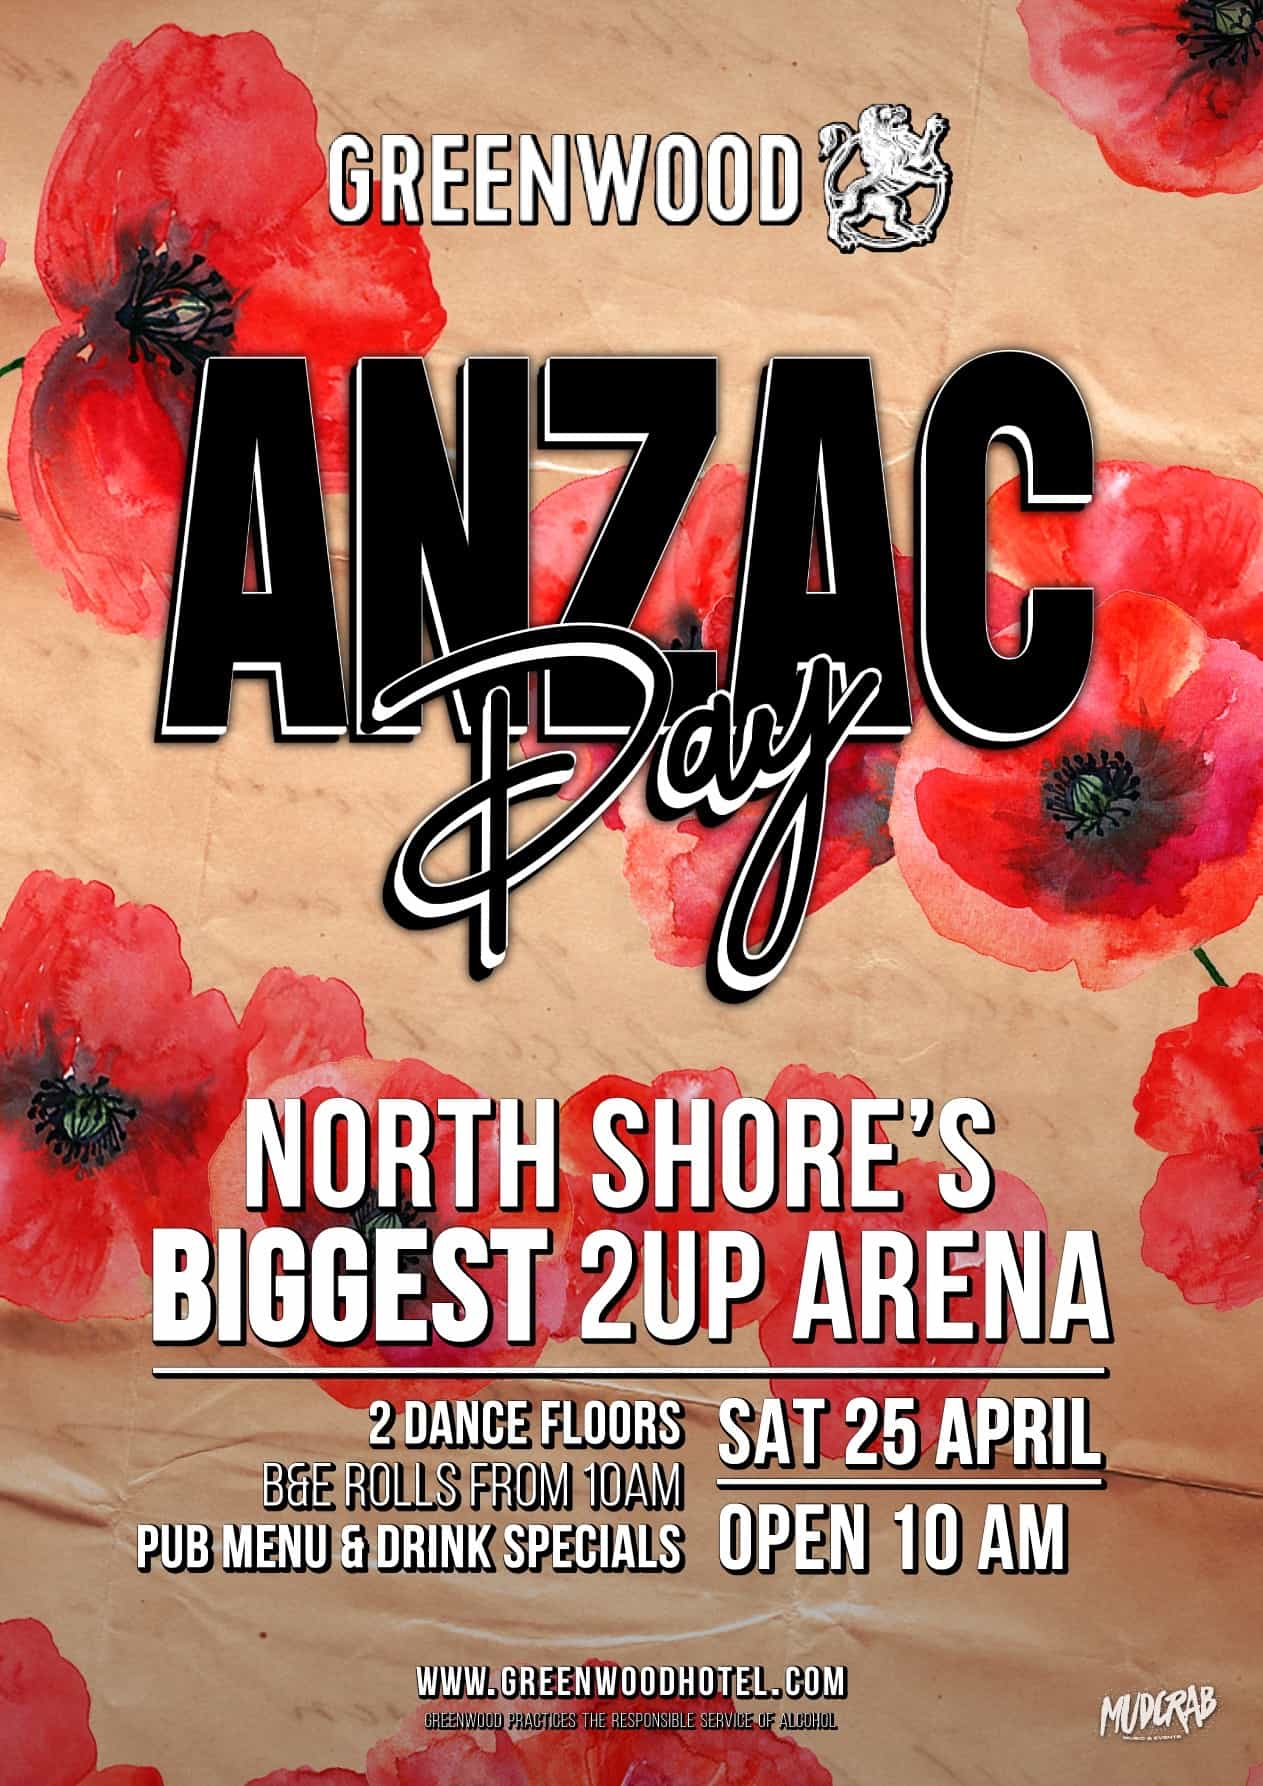 Greenwood Hotel Anzac Day 2020